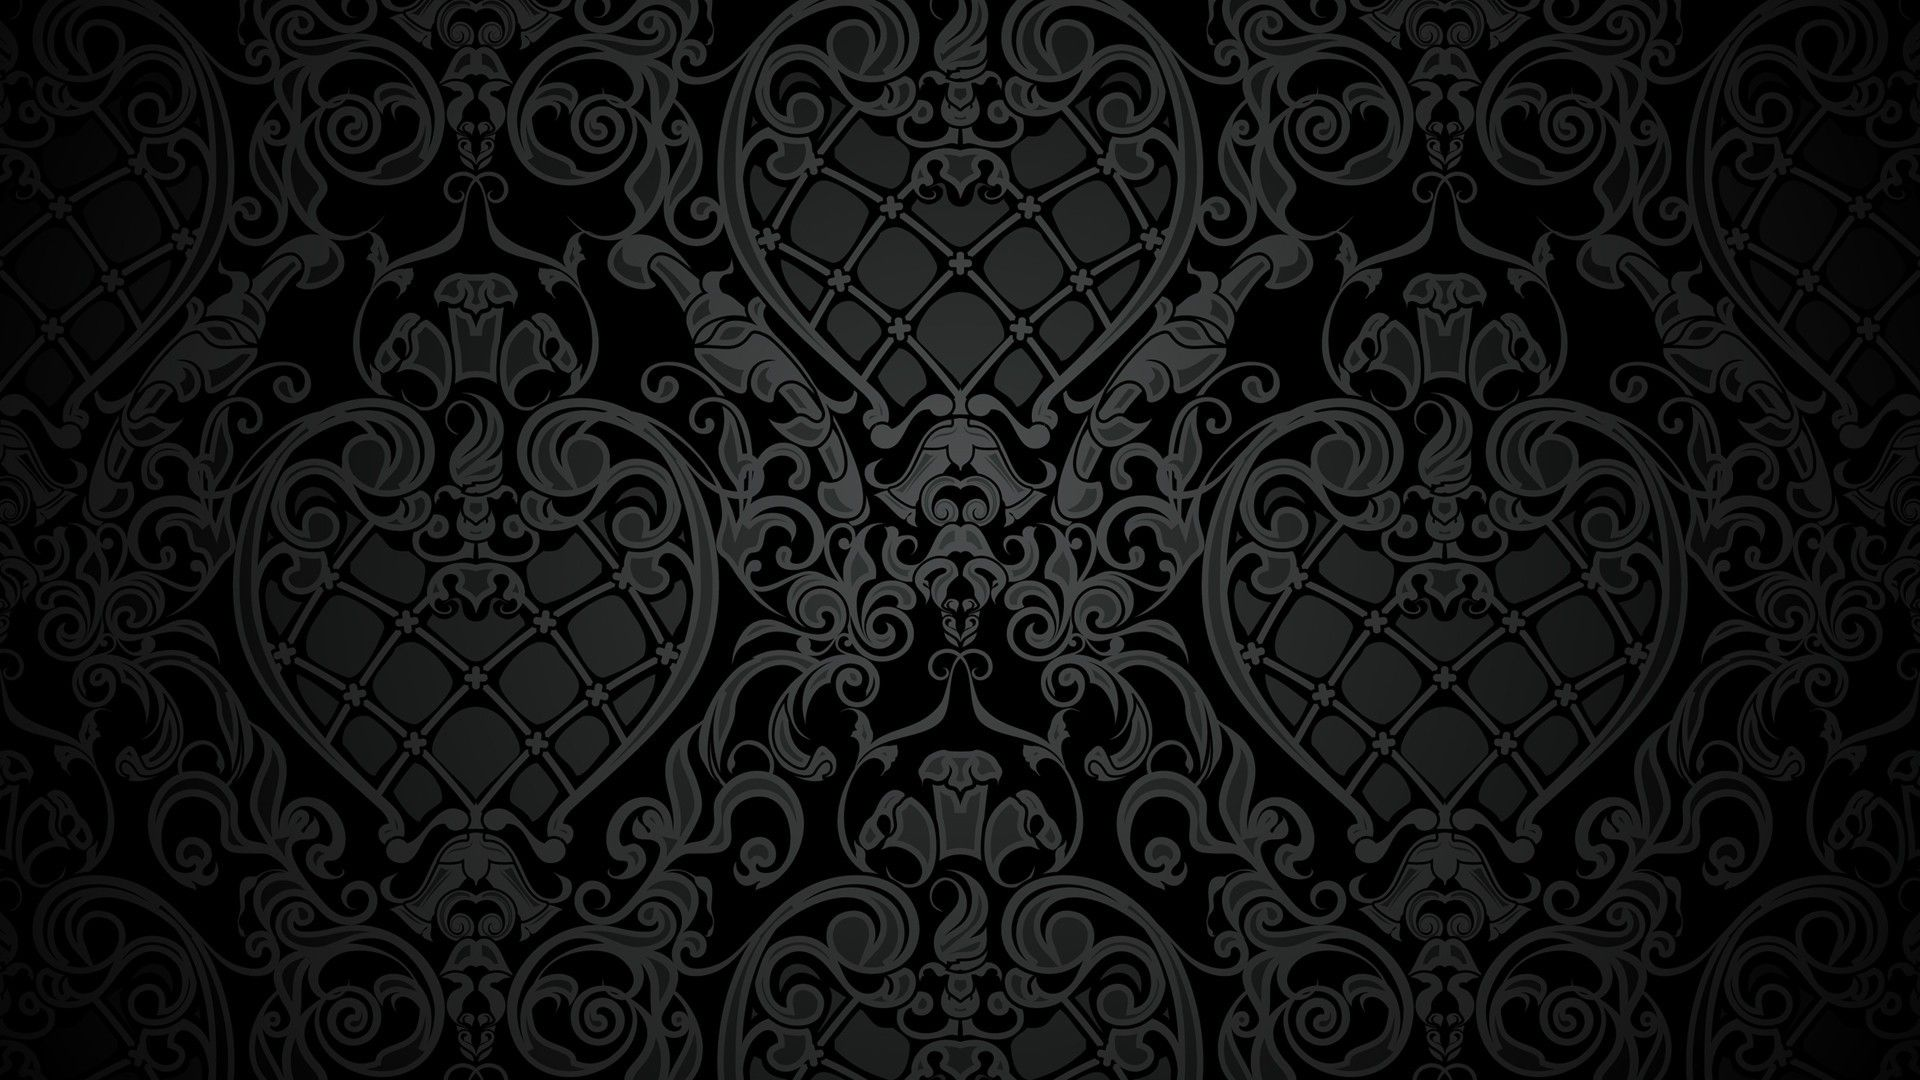 Hdscreen black background graphic design pattern vectors for Black wallpaper with design